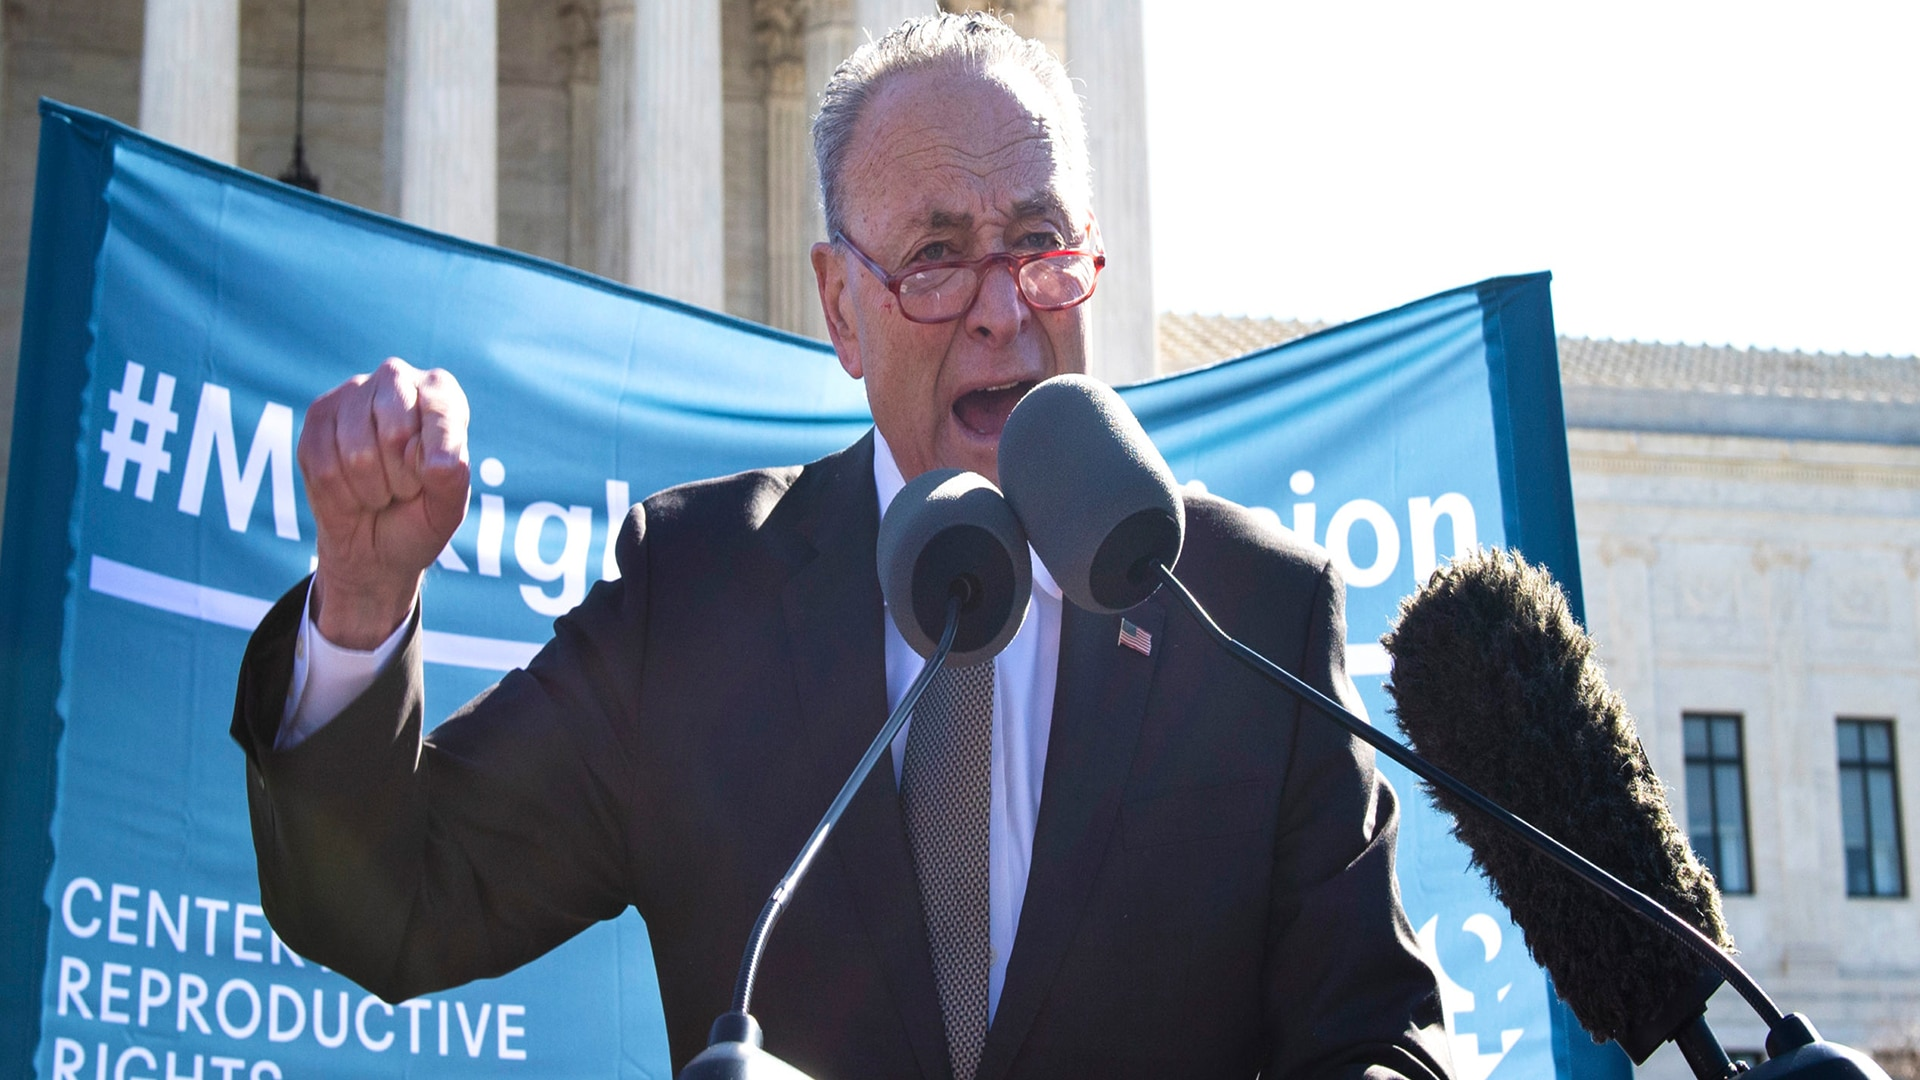 """Thursday-Deomoncrats To SCOTUS: Infanticide Continues Or The """"Whirlwind"""" Will Make You Pay!"""